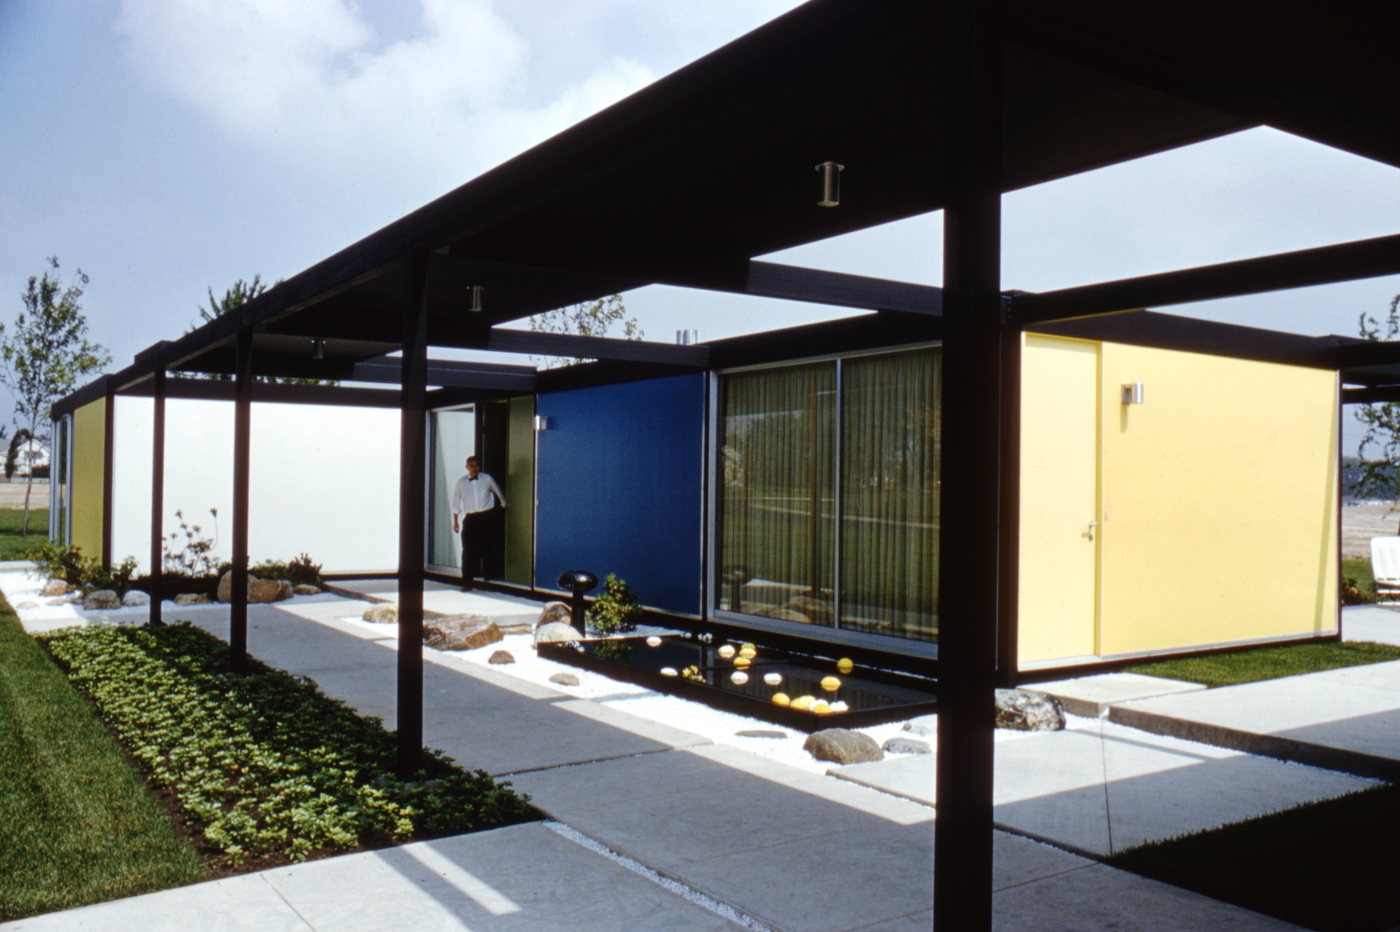 A mid-century modern home designed by Emil Tessin